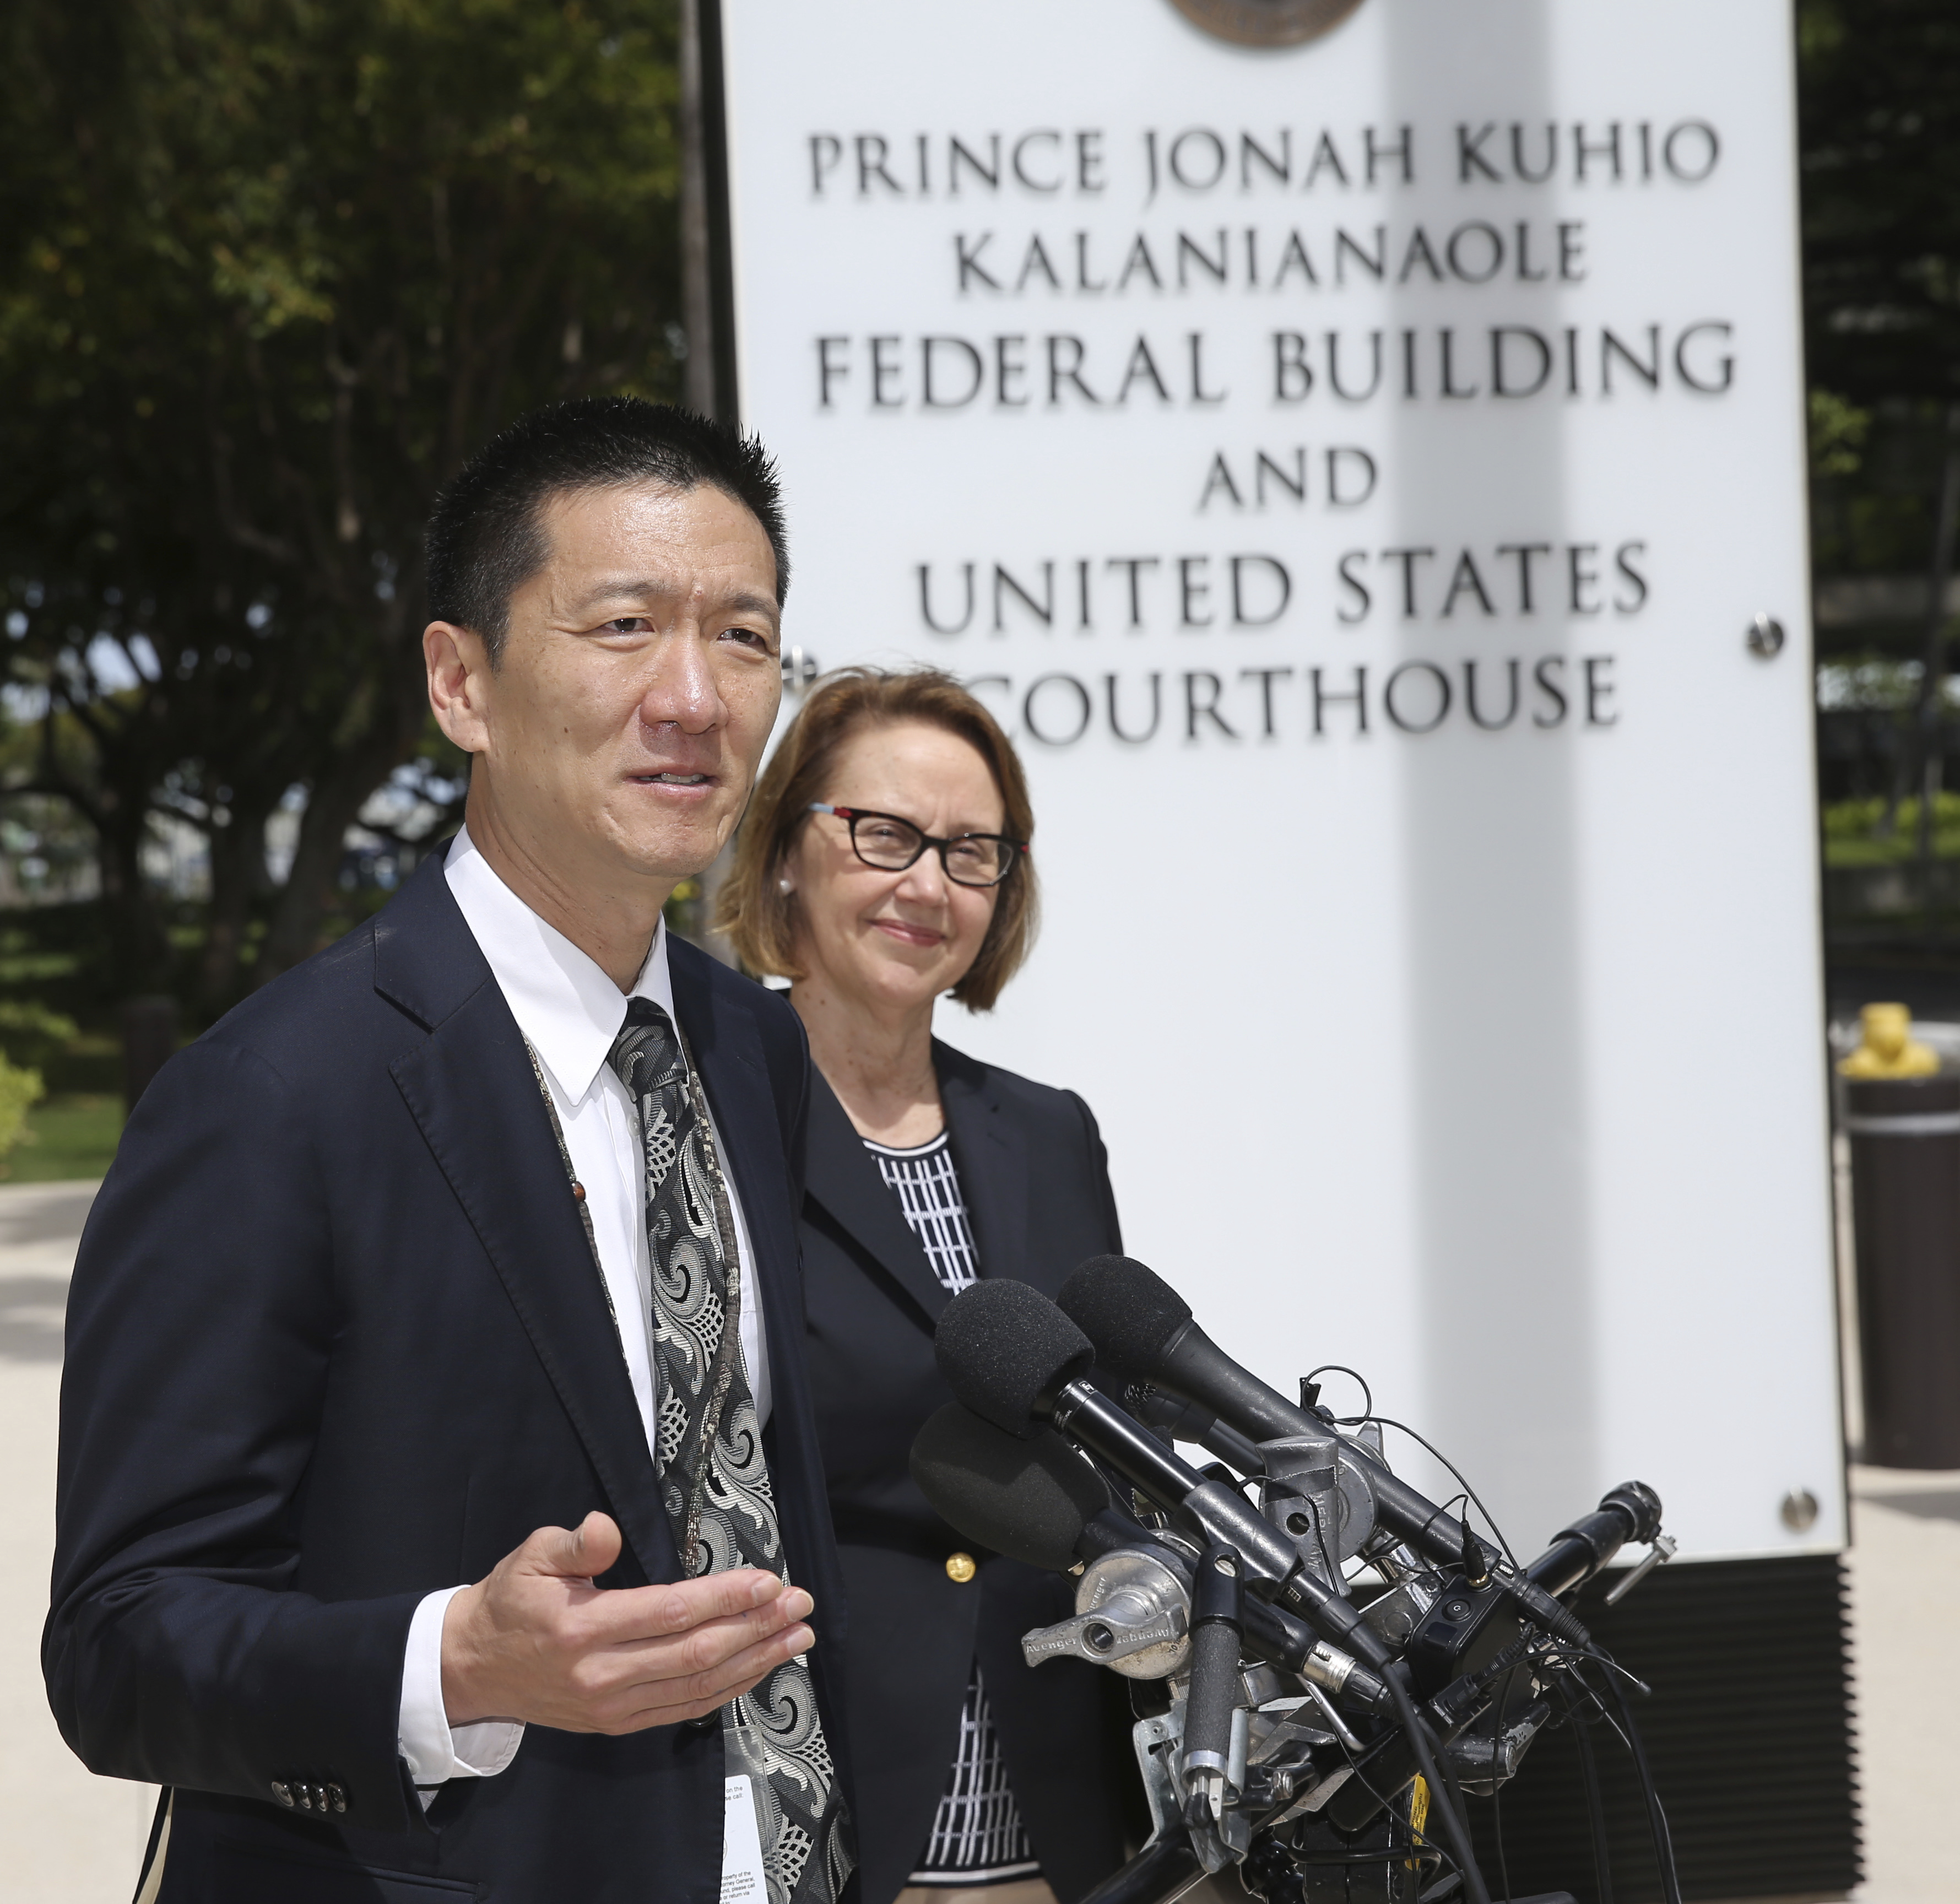 Hawaii Attorney General Douglas Chin, left, and Oregon Attorney General Ellen Rosenblum speak at a press conference outside the federal courthouse on Wednesday in Honolulu. Hearings were scheduled Wednesday in Maryland, Washington state and Hawaii on President Donald Trump's travel ban.